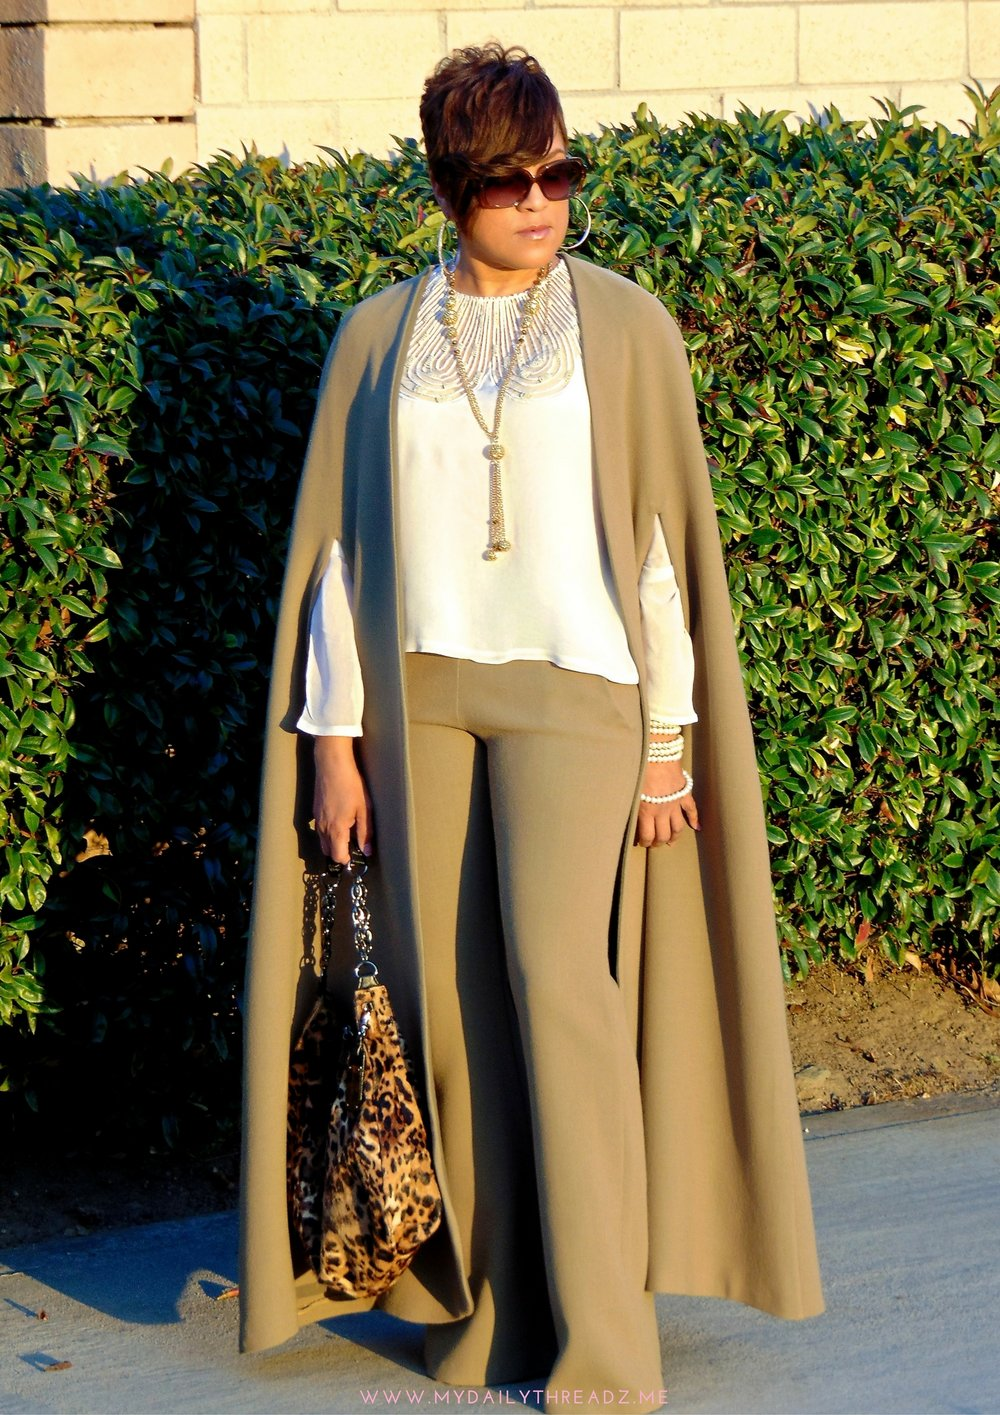 This wool cape and matching pants happens to be one of my all time favorites. Unfortunately the California weather prevents me from enjoying it as much as I would like!